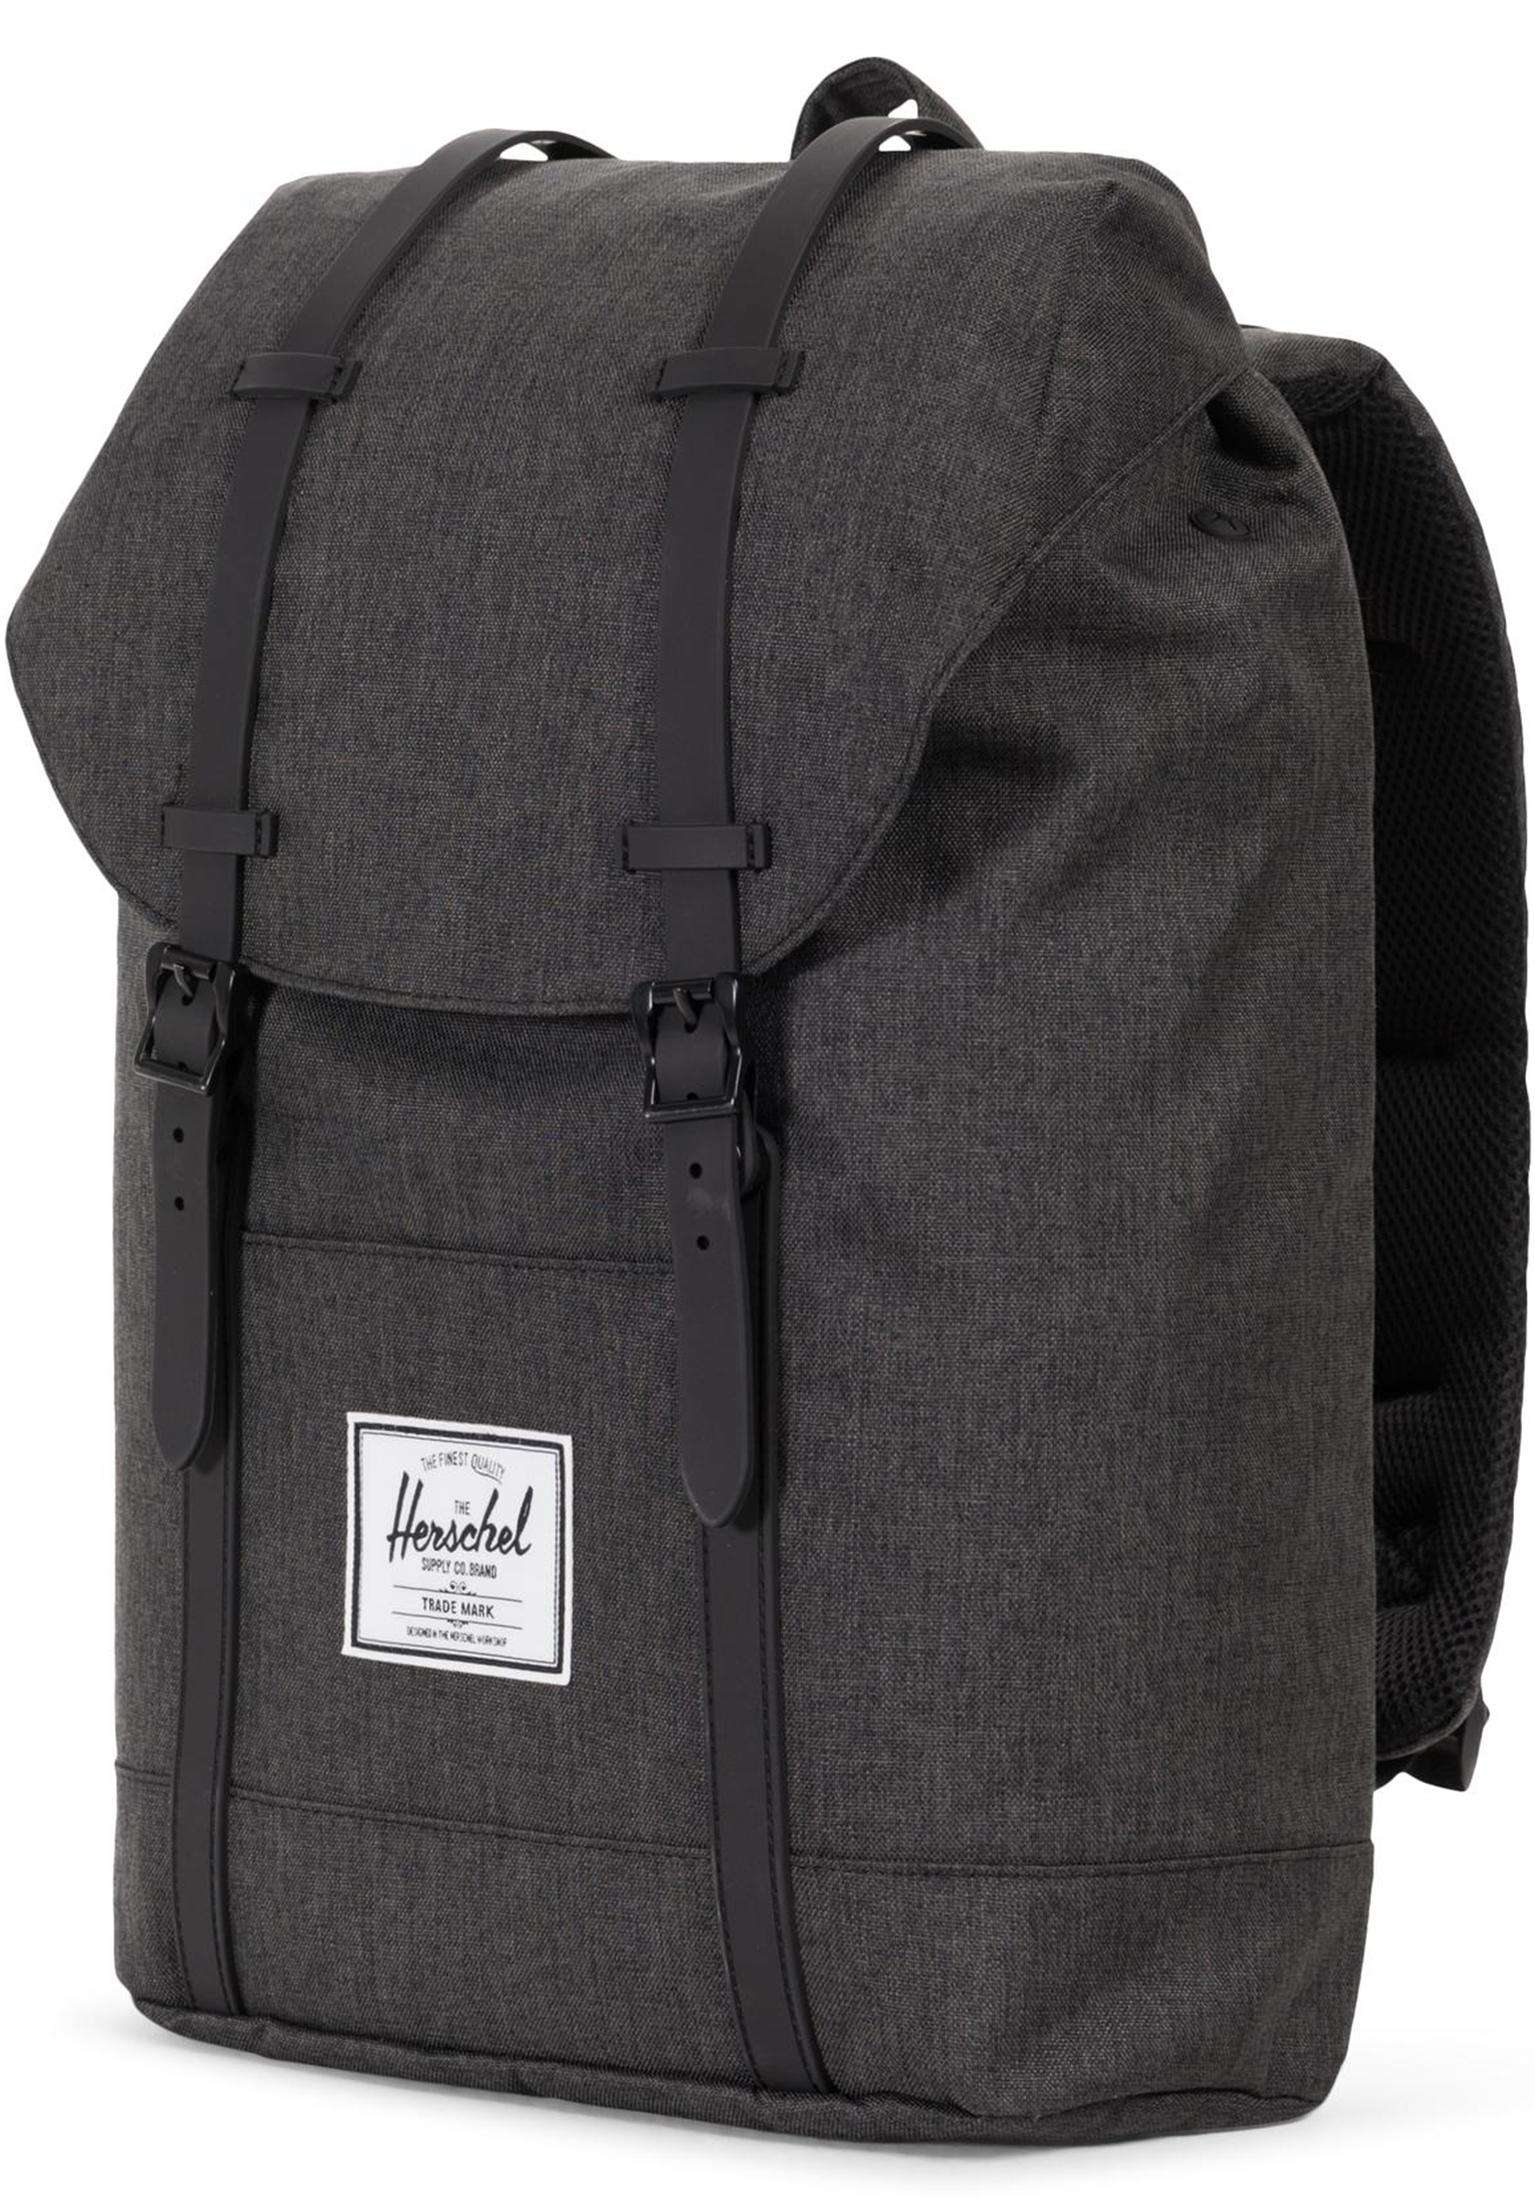 d113216342000 Retreat Herschel Backpacks in blackcrosshatch-blackrubber for Men ...